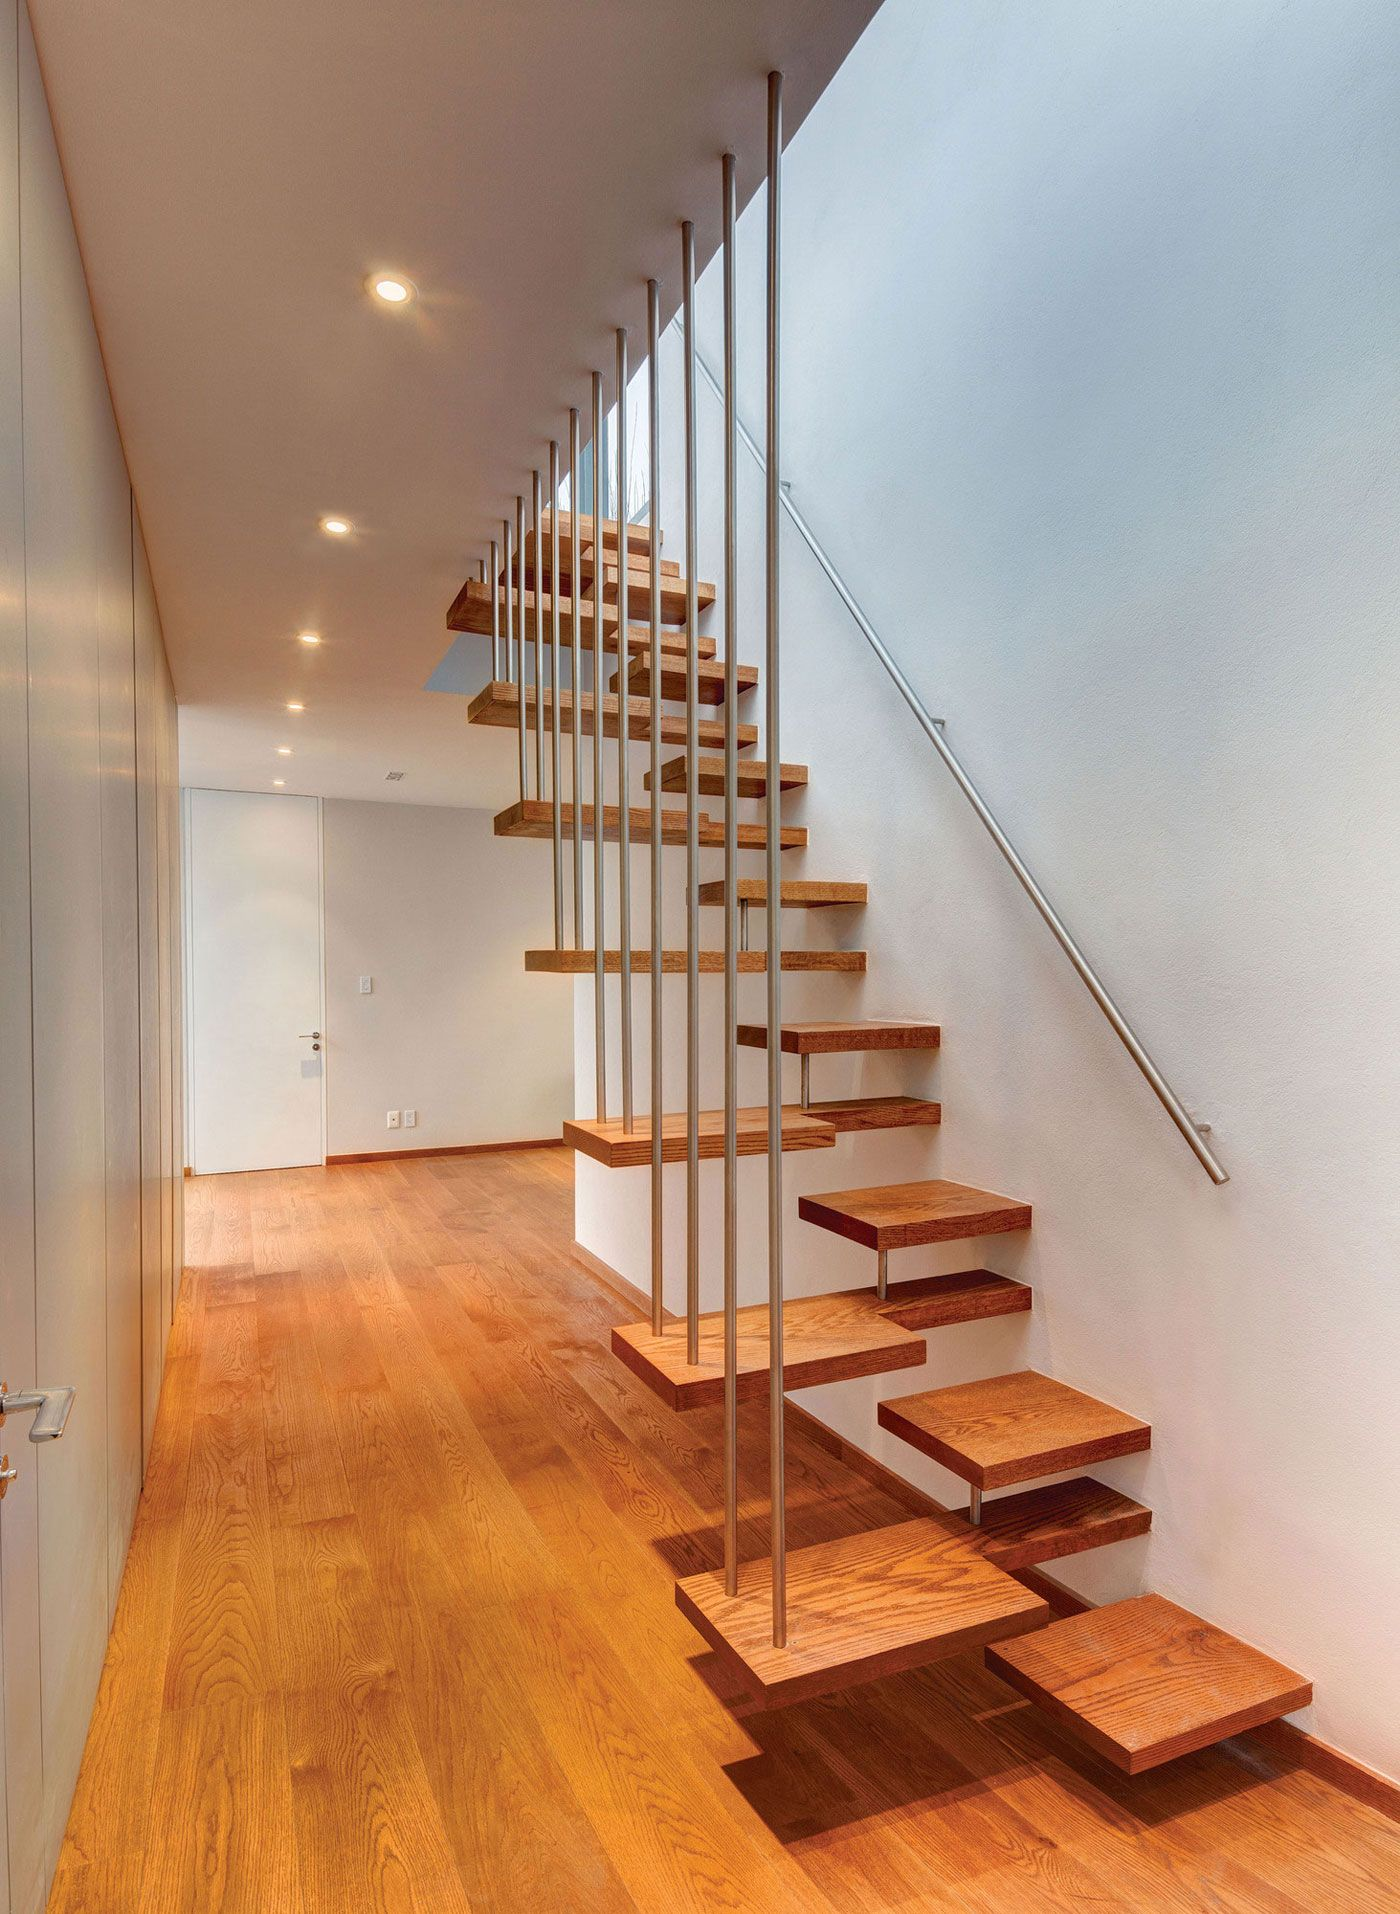 Alternating tread stair revit home design ideas - Unique And Creative Staircase Designs For Modern Homes